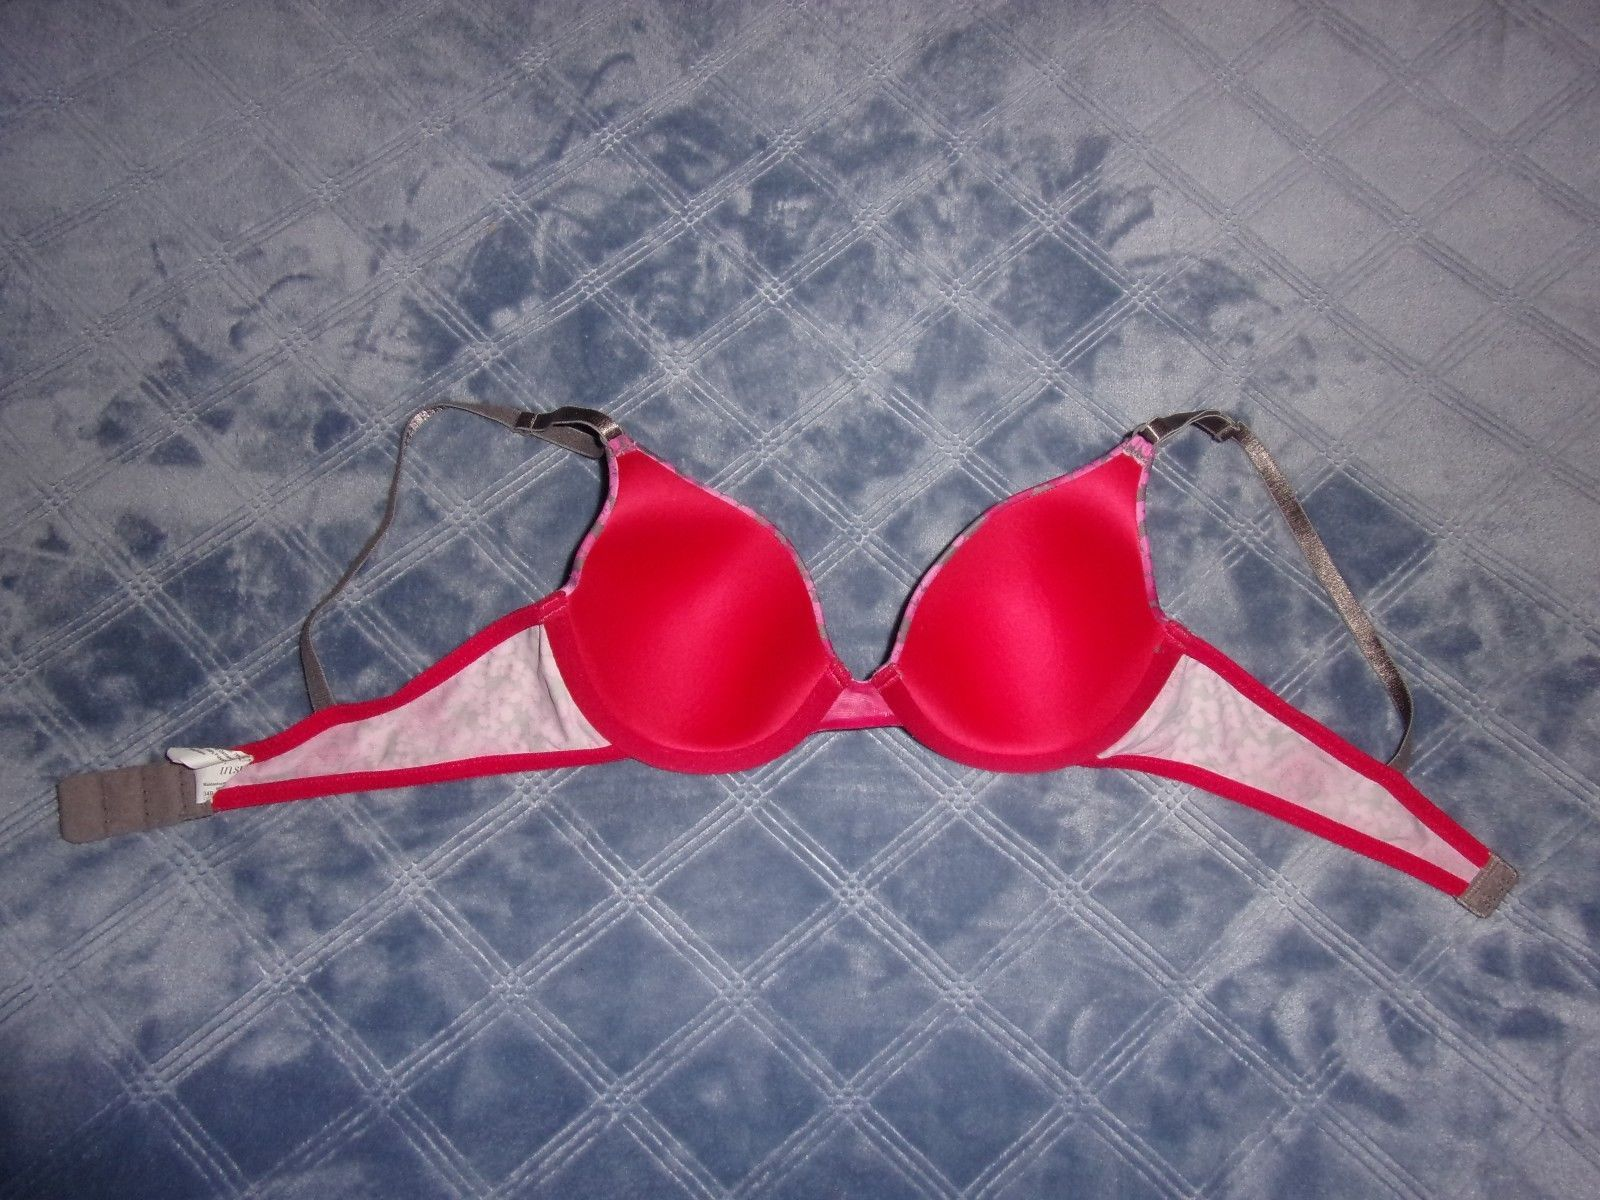 131890428f ... 34B GUC Inspirations by Maidenform Contour Cup Underwire T-Shirt Bra  06559